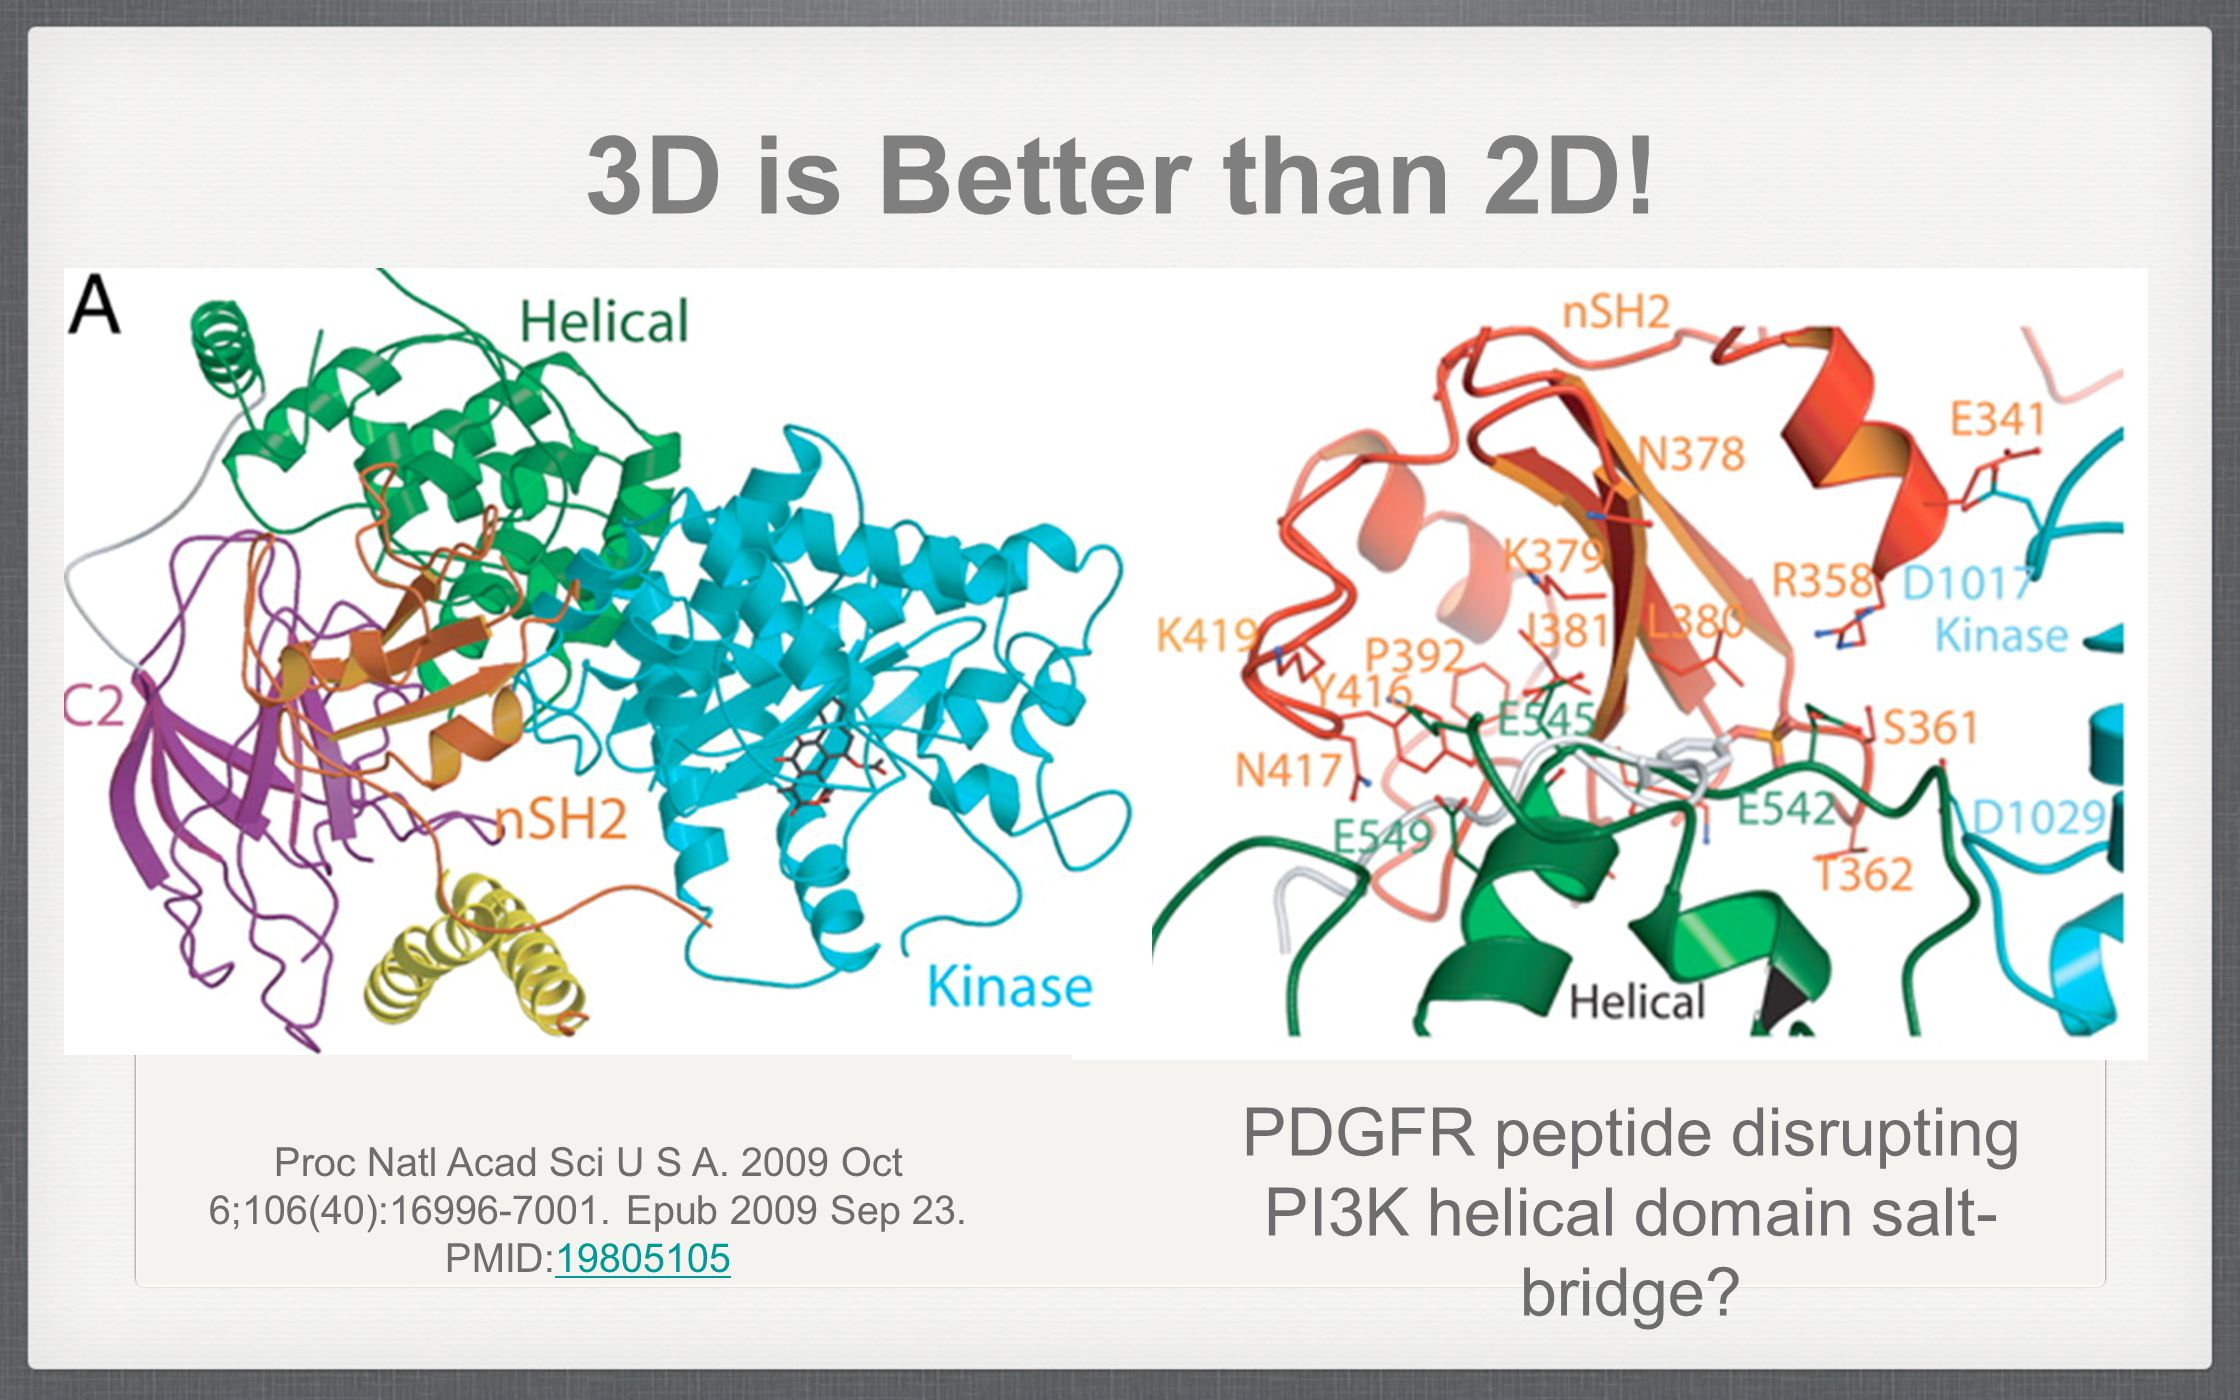 3D is Better than 2D! Proc Natl Acad Sci U S A. 2009 Oct 6;106(40):16996-7001. Epub 2009 Sep 23. PMID:1980510519805105 PDGFR peptide disrupting PI3K h